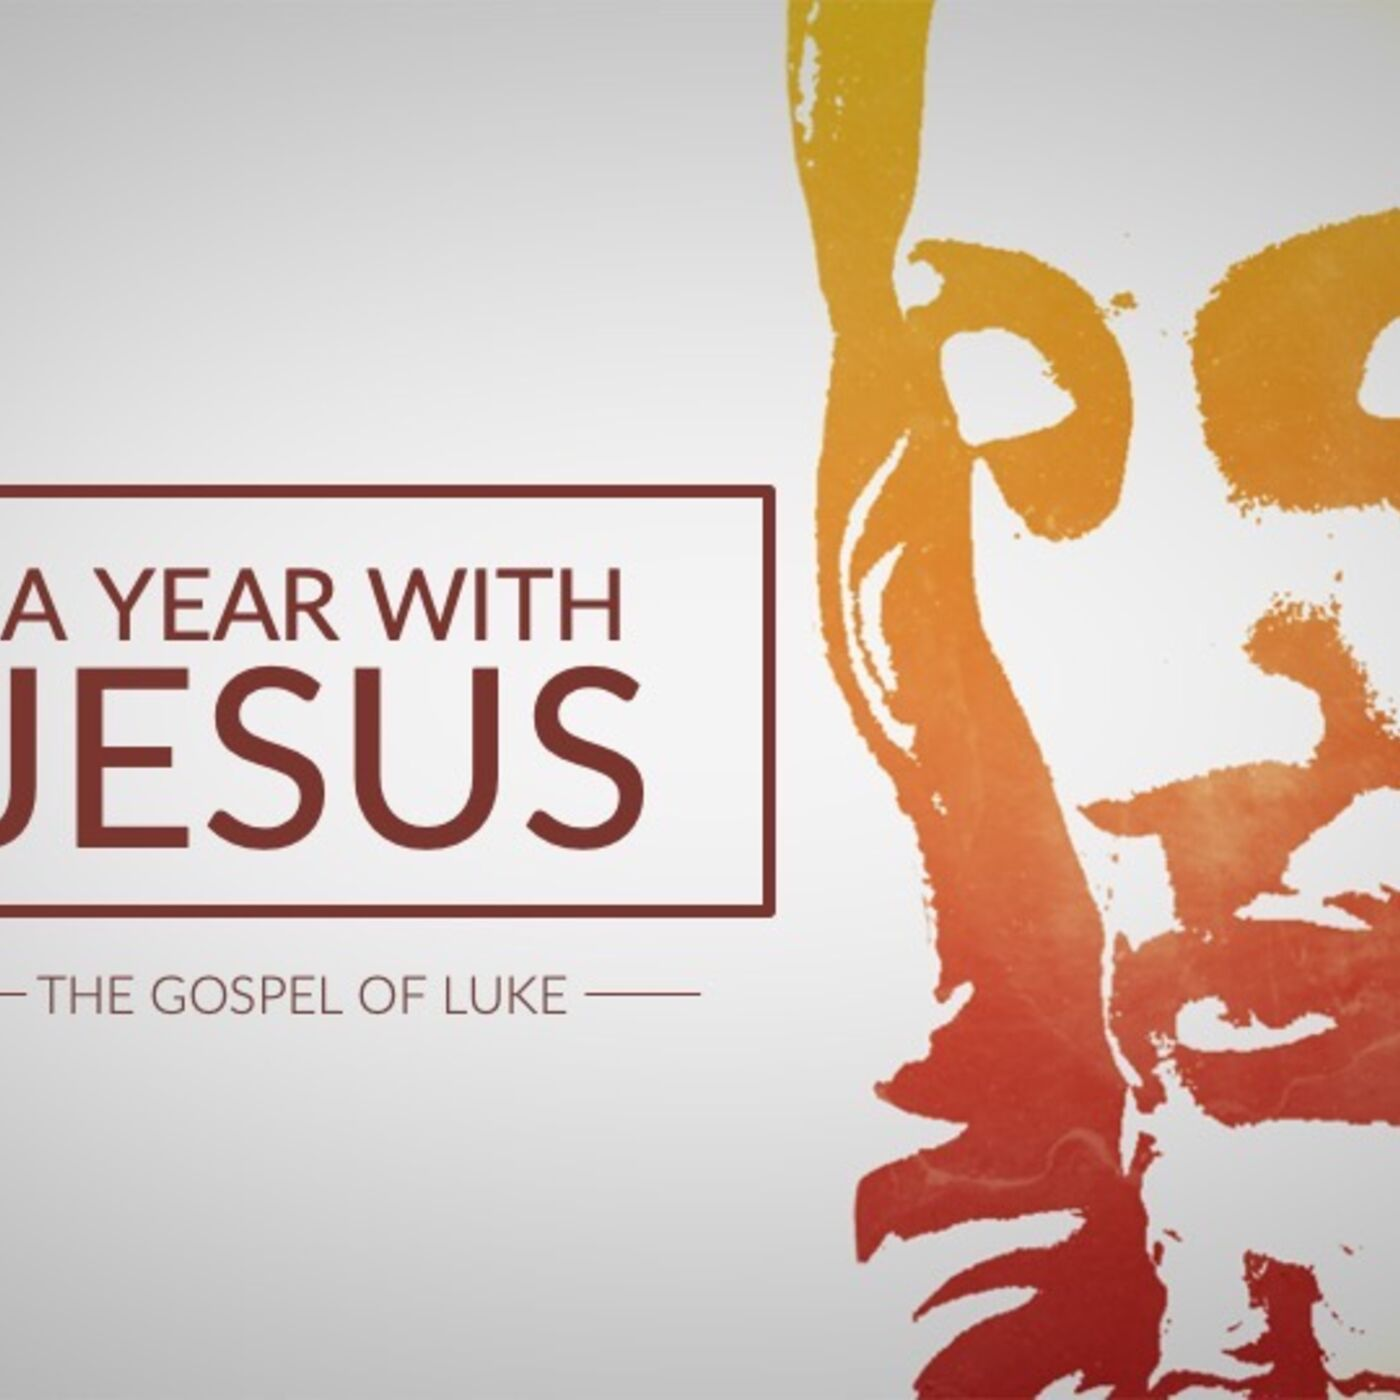 A Year With Jesus: Unless You Repent (Luke 13:1-9)